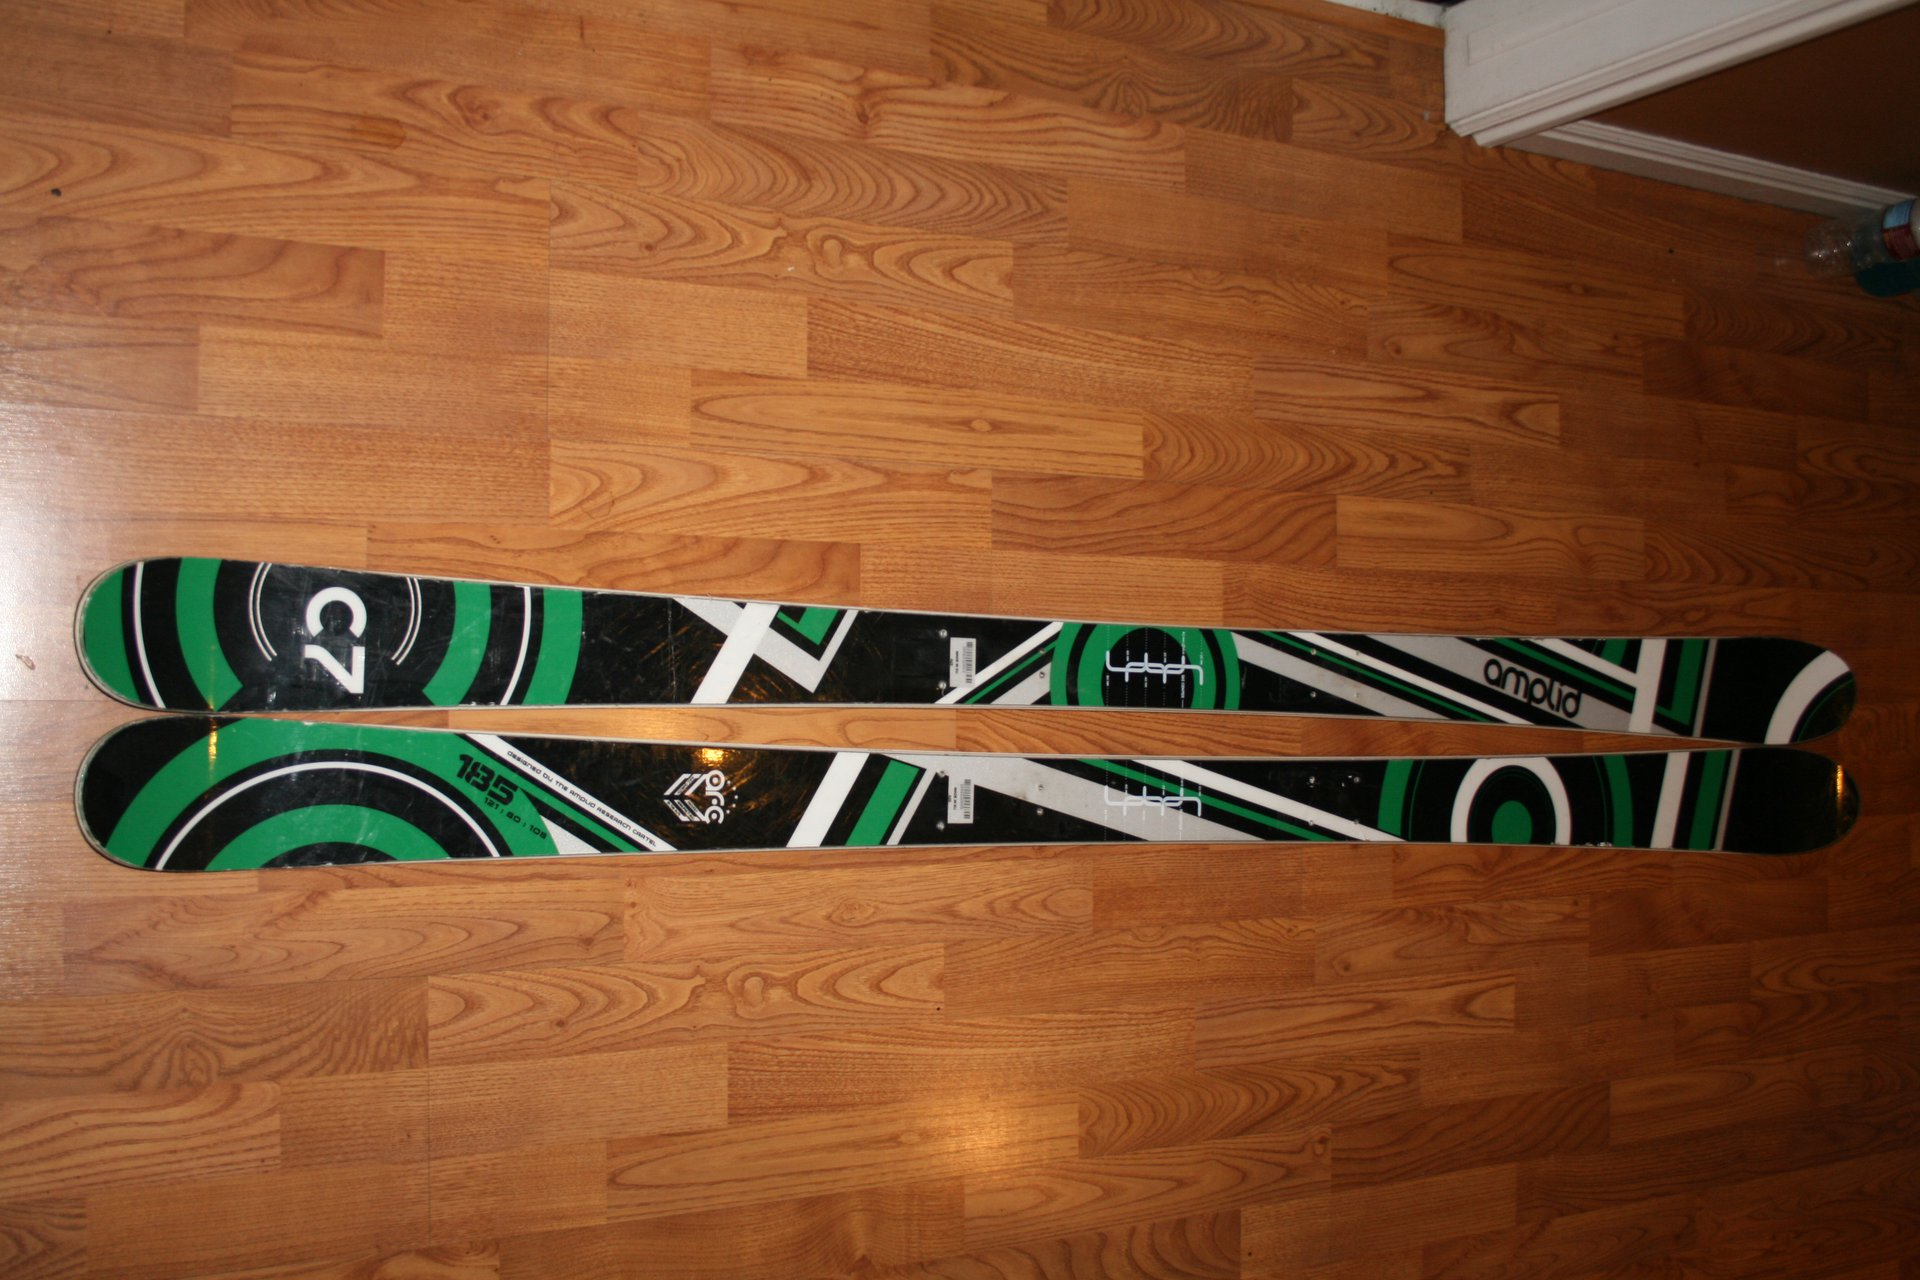 Amplid skis FOR SALE